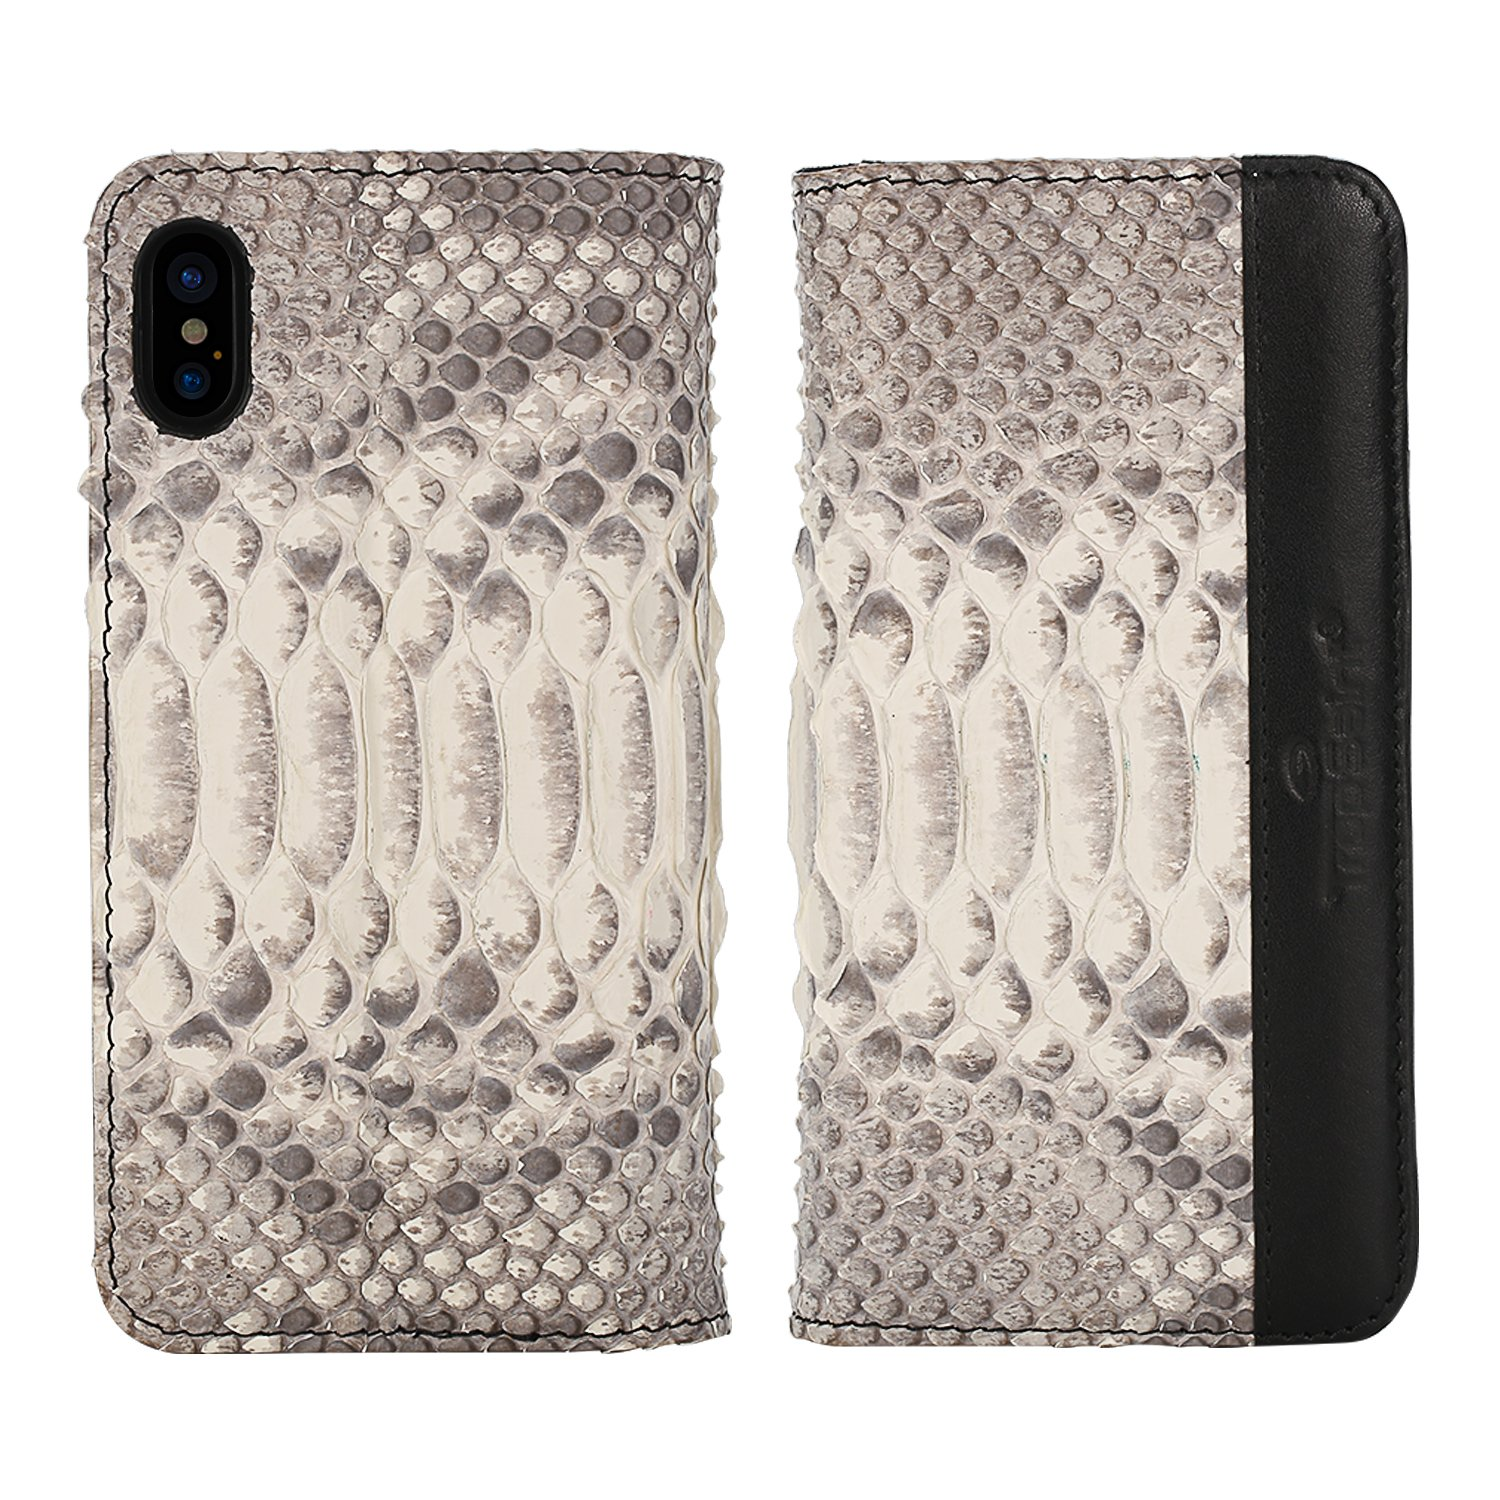 Luxury Wallet Cover For iPhone X - Hand Made from Genuine Python Skin, Premium Case by Trop Saint - Natural